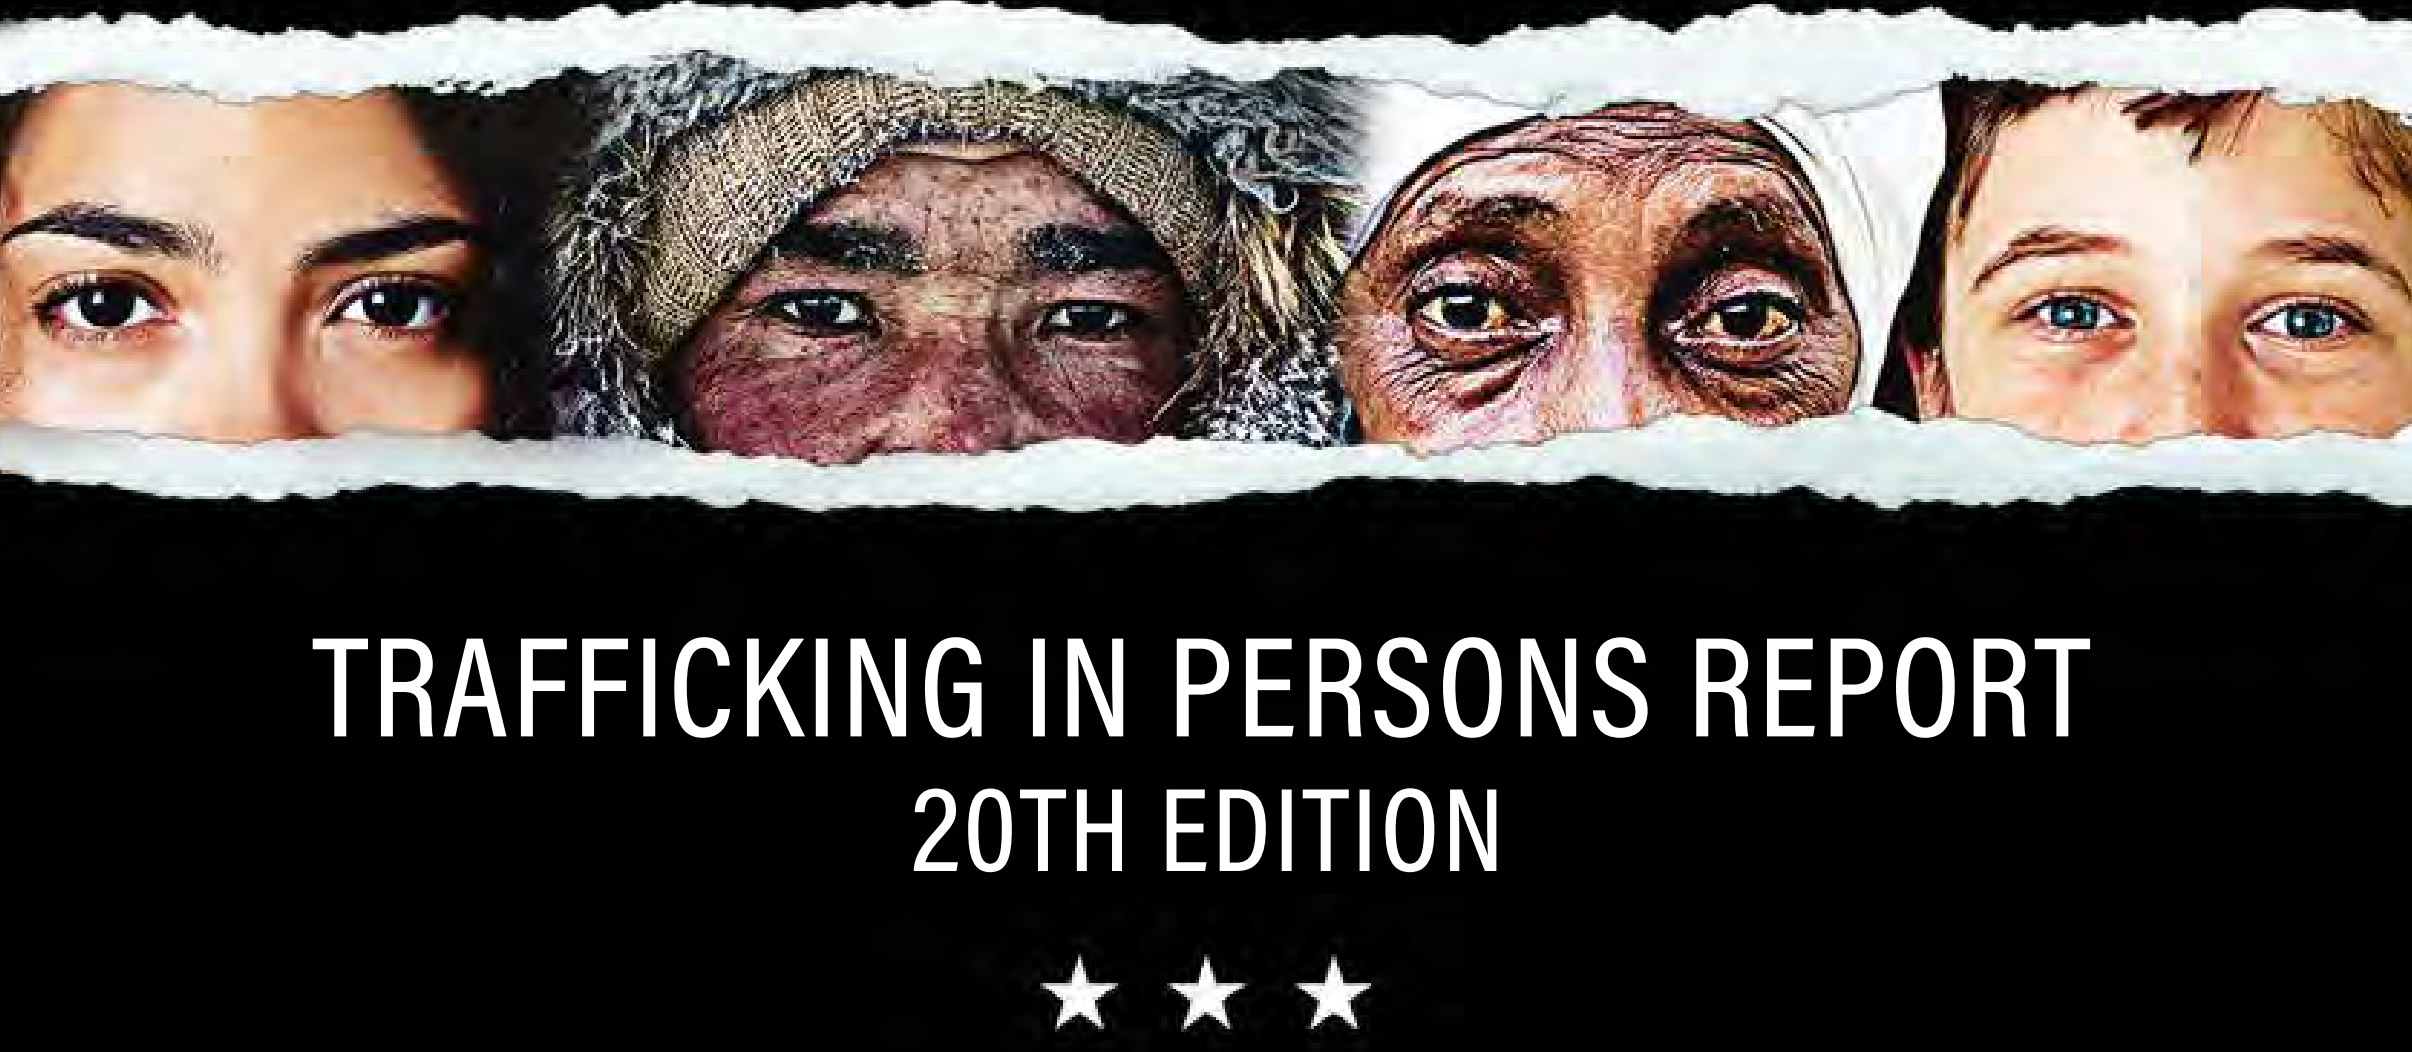 The Efficacy of the State Department's Trafficking in Persons Report: A Review of the Evidence